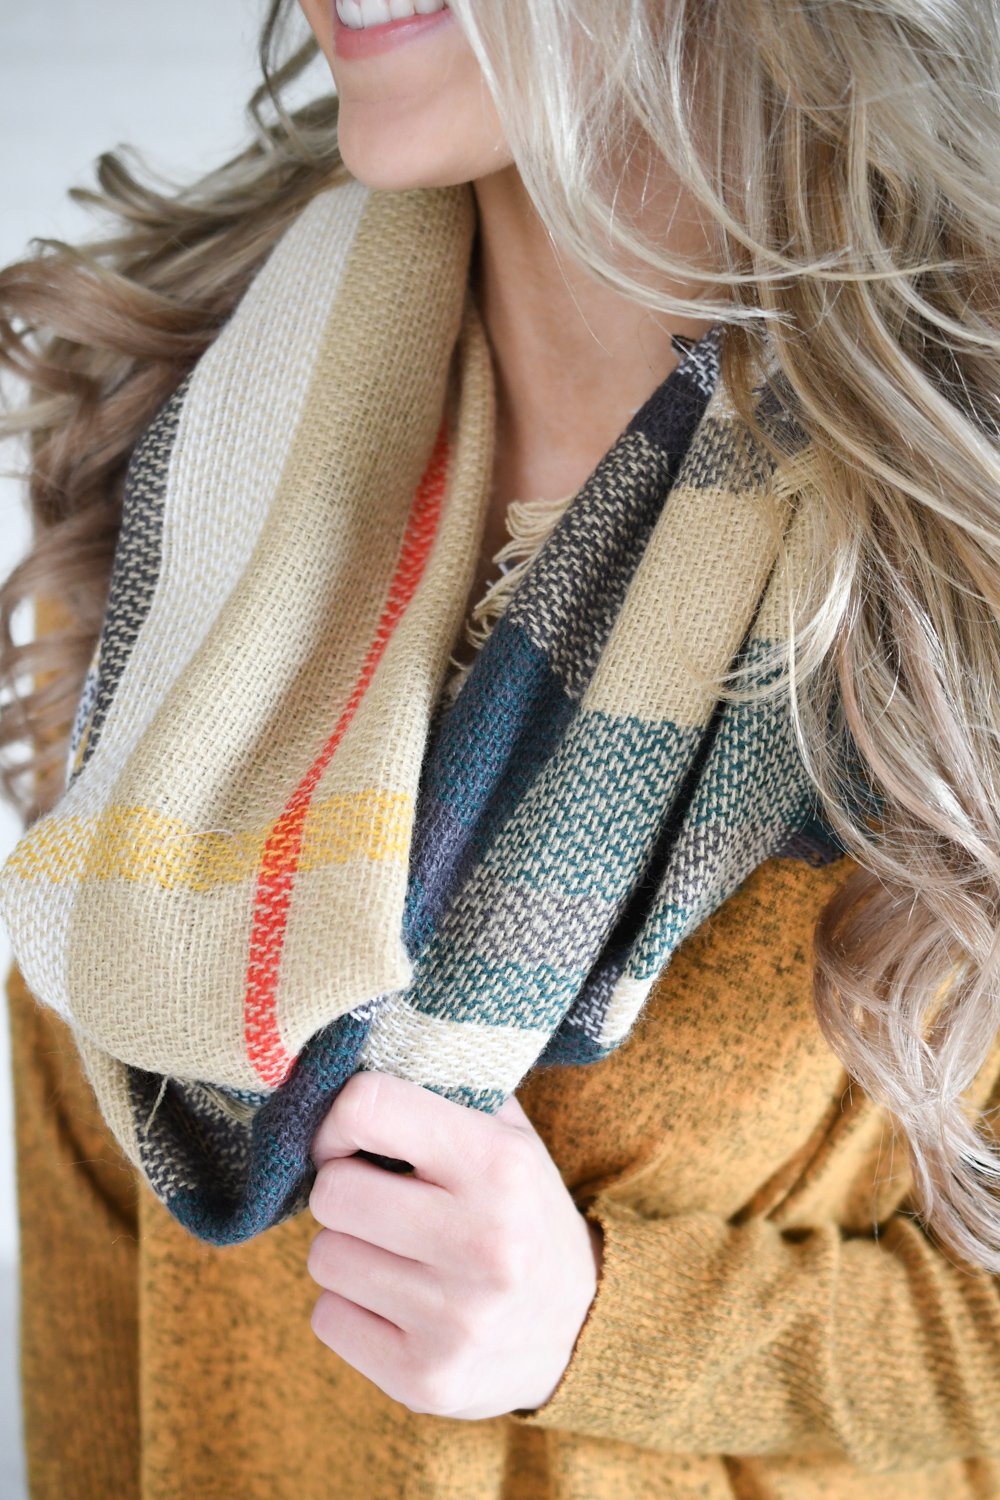 Pine Amp Camel Plaid Infinity Scarf The Pulse Boutique